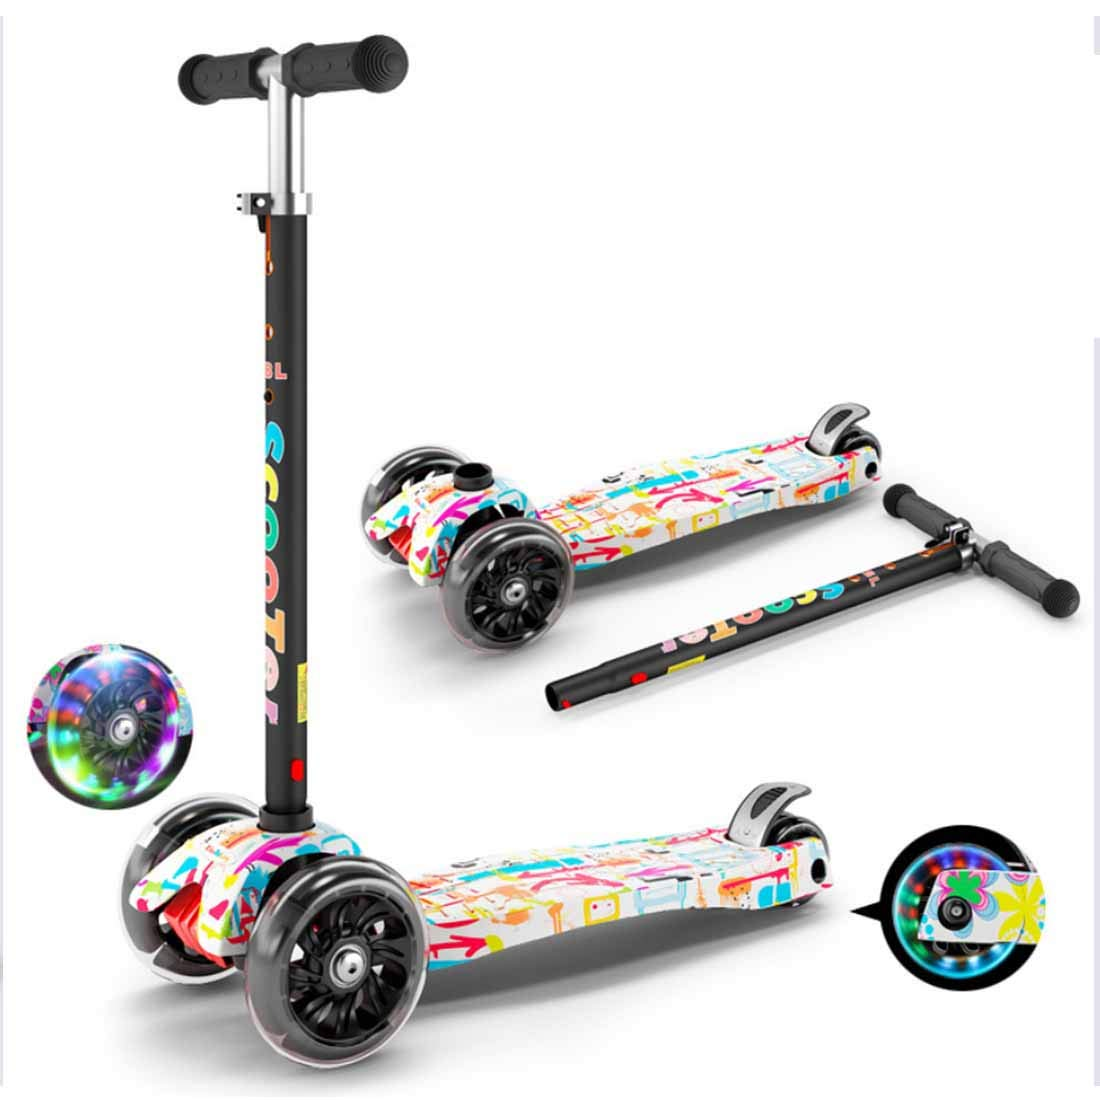 MYMGG Pedal Scooter Teens 3-Wheeled Scooter Detachable Kick Scooter Durable Push Scooter Suitable for Age 3 Up Kids,White